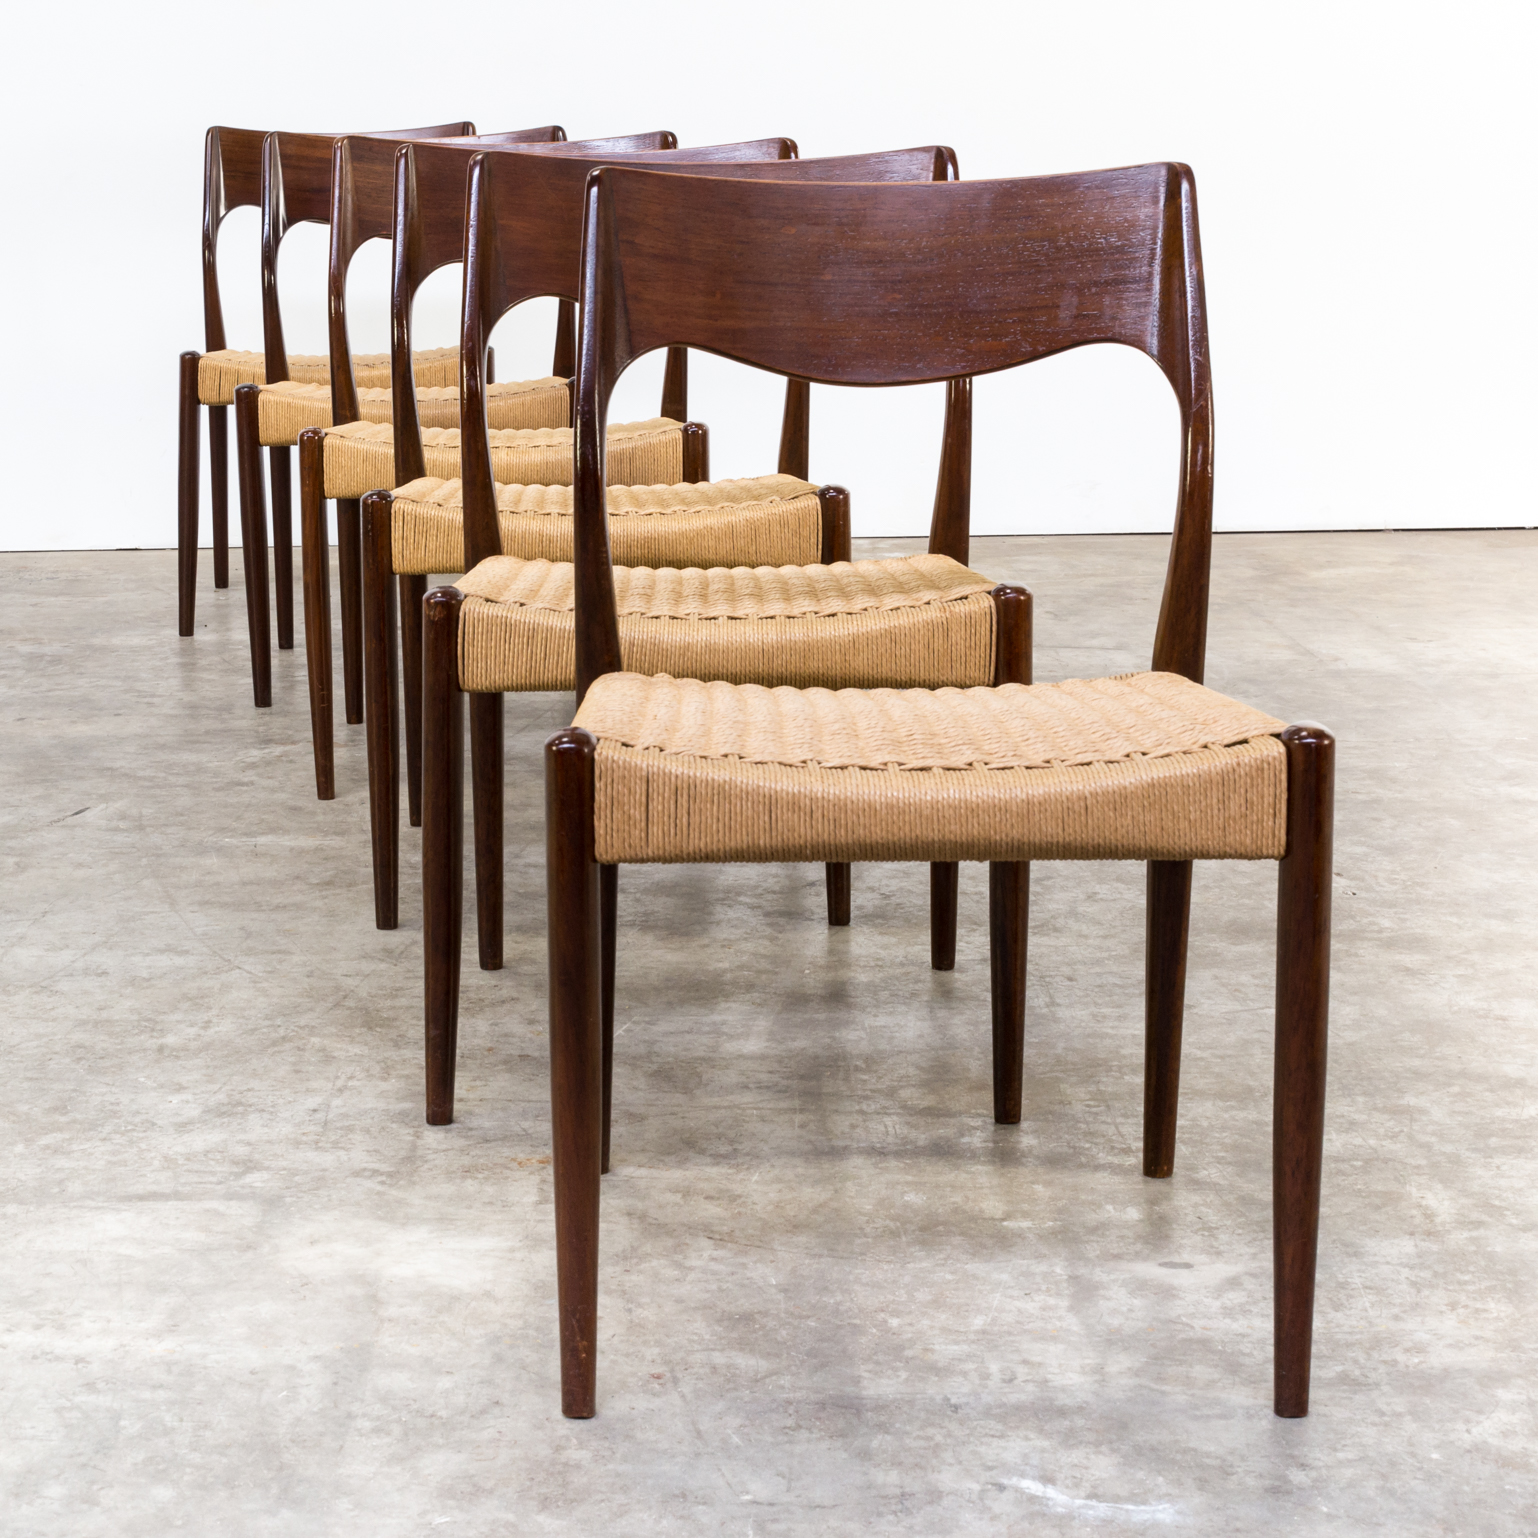 60s niels otto m ller model 71 dinner chairs for j l for 60s chair design